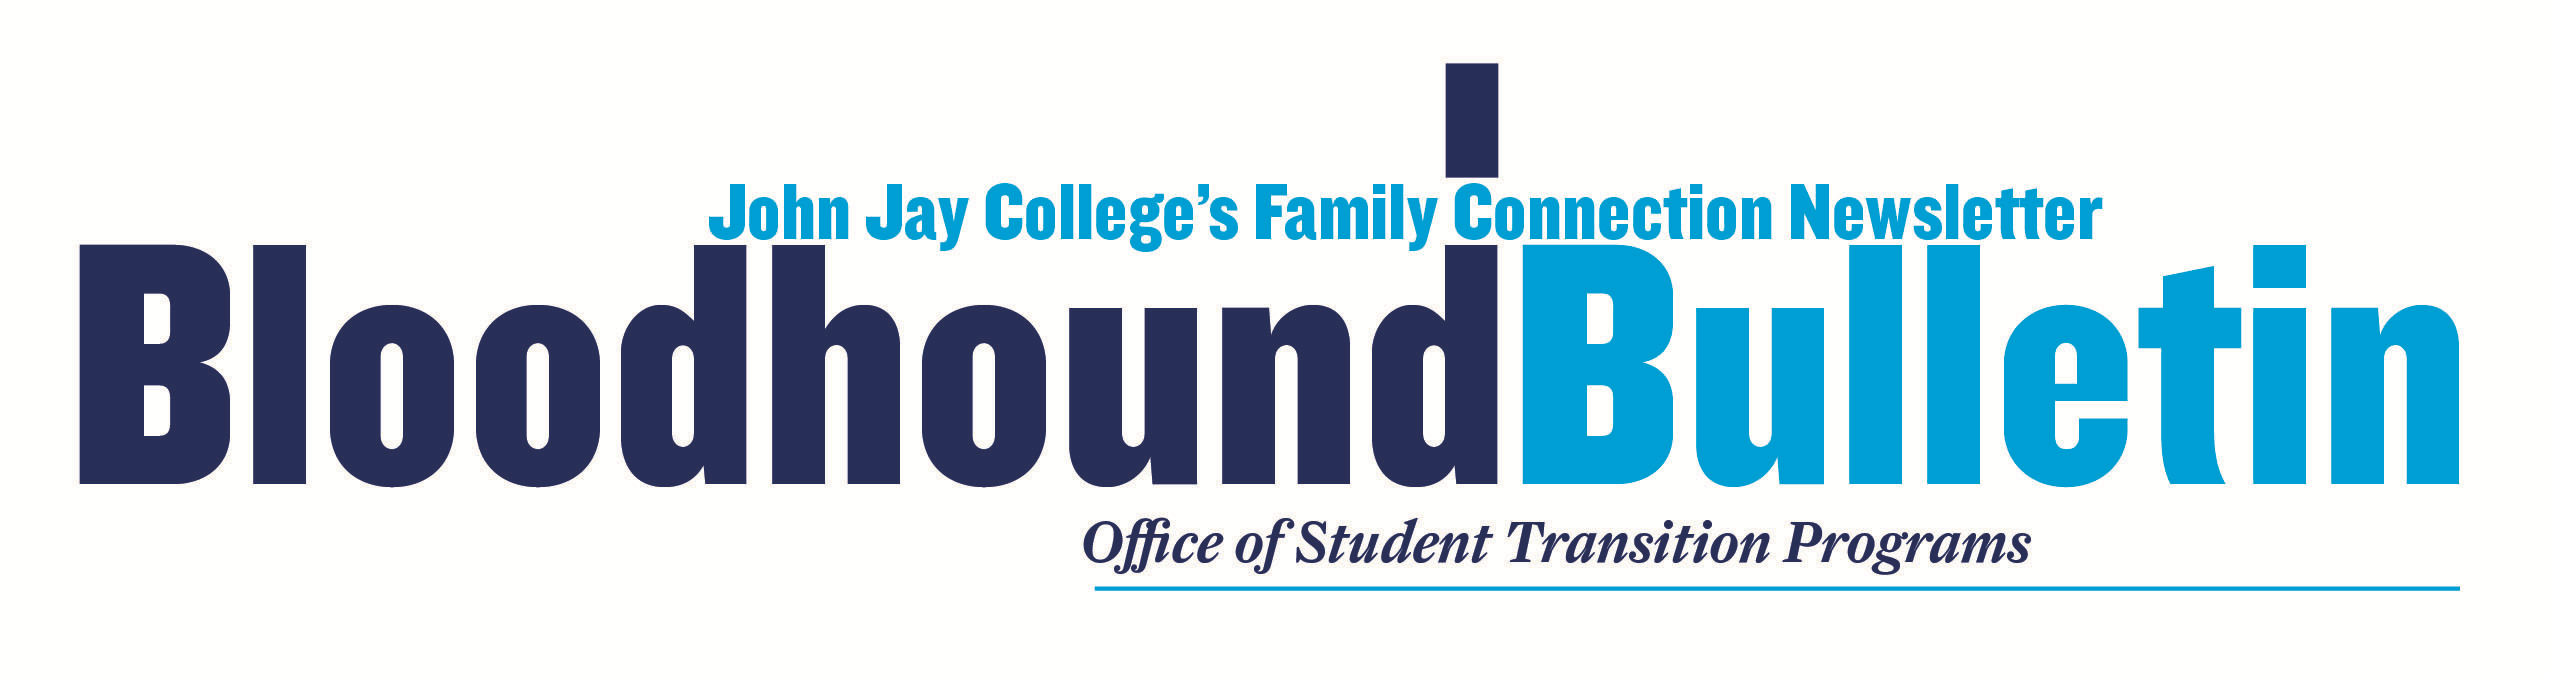 Bloodhound Bulletin, John Jay College's family connection newsletter